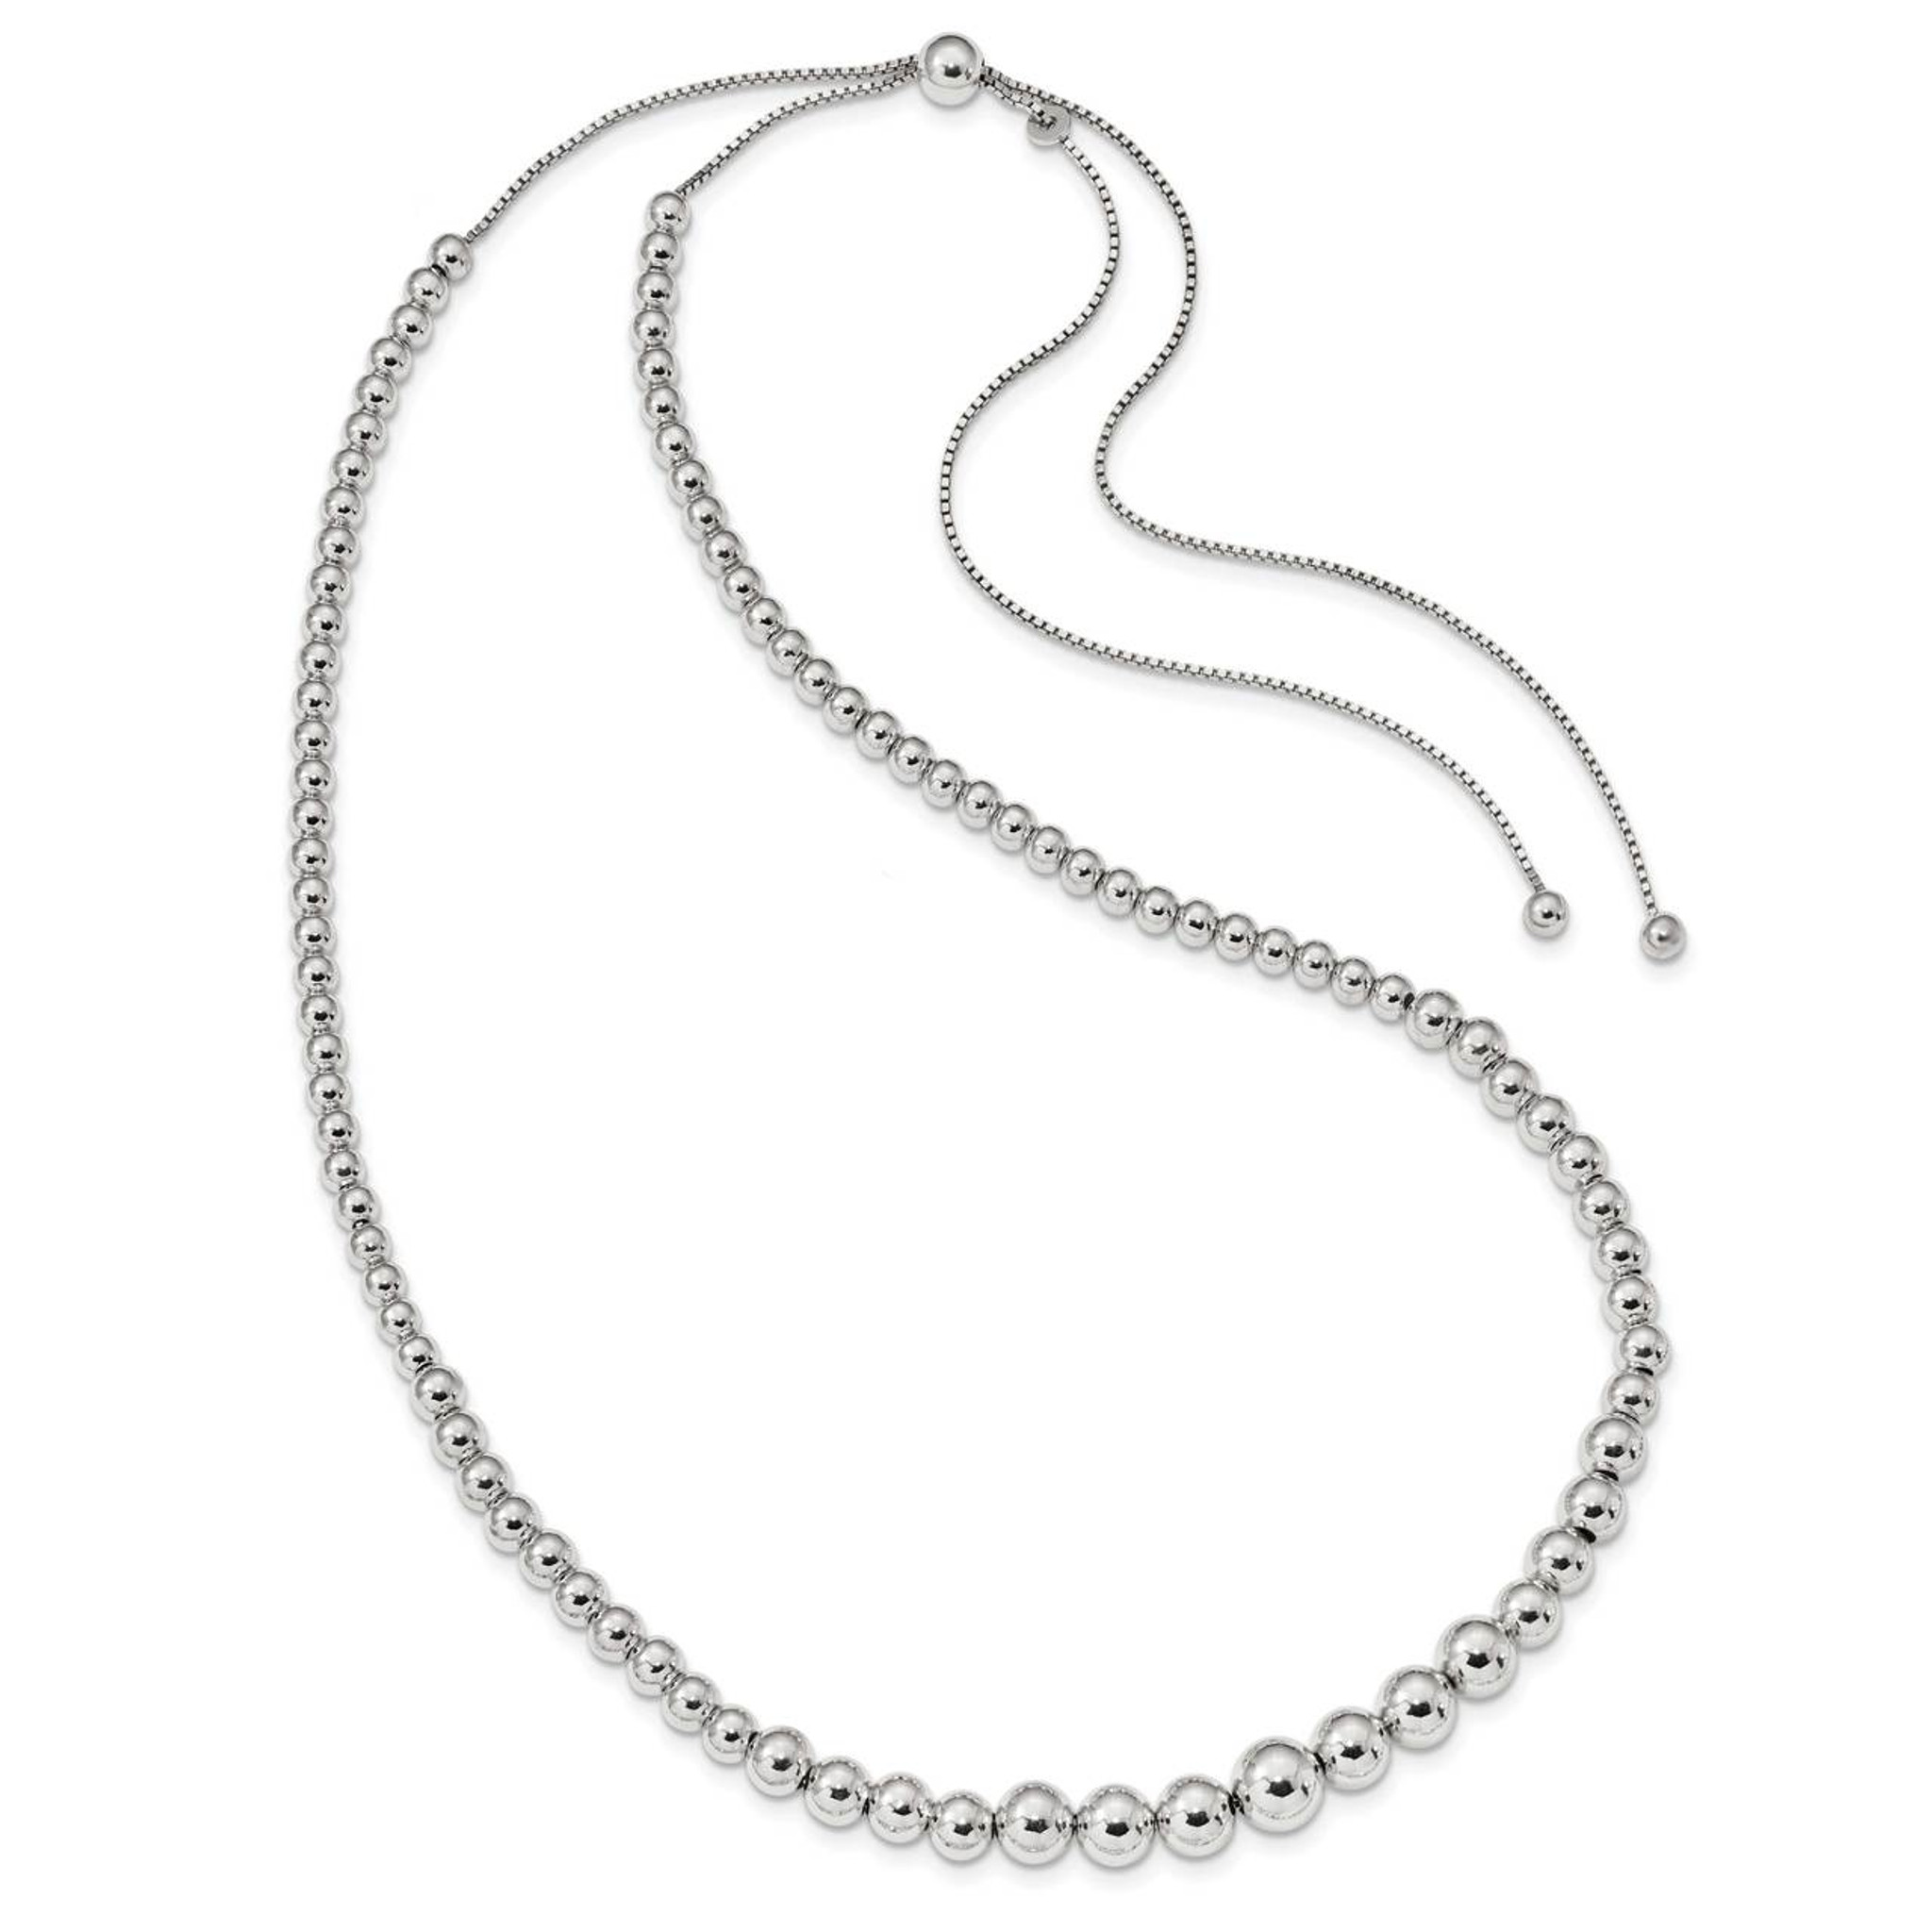 925 Sterling Silver Graduated Beads Adjustable Necklace 28inch